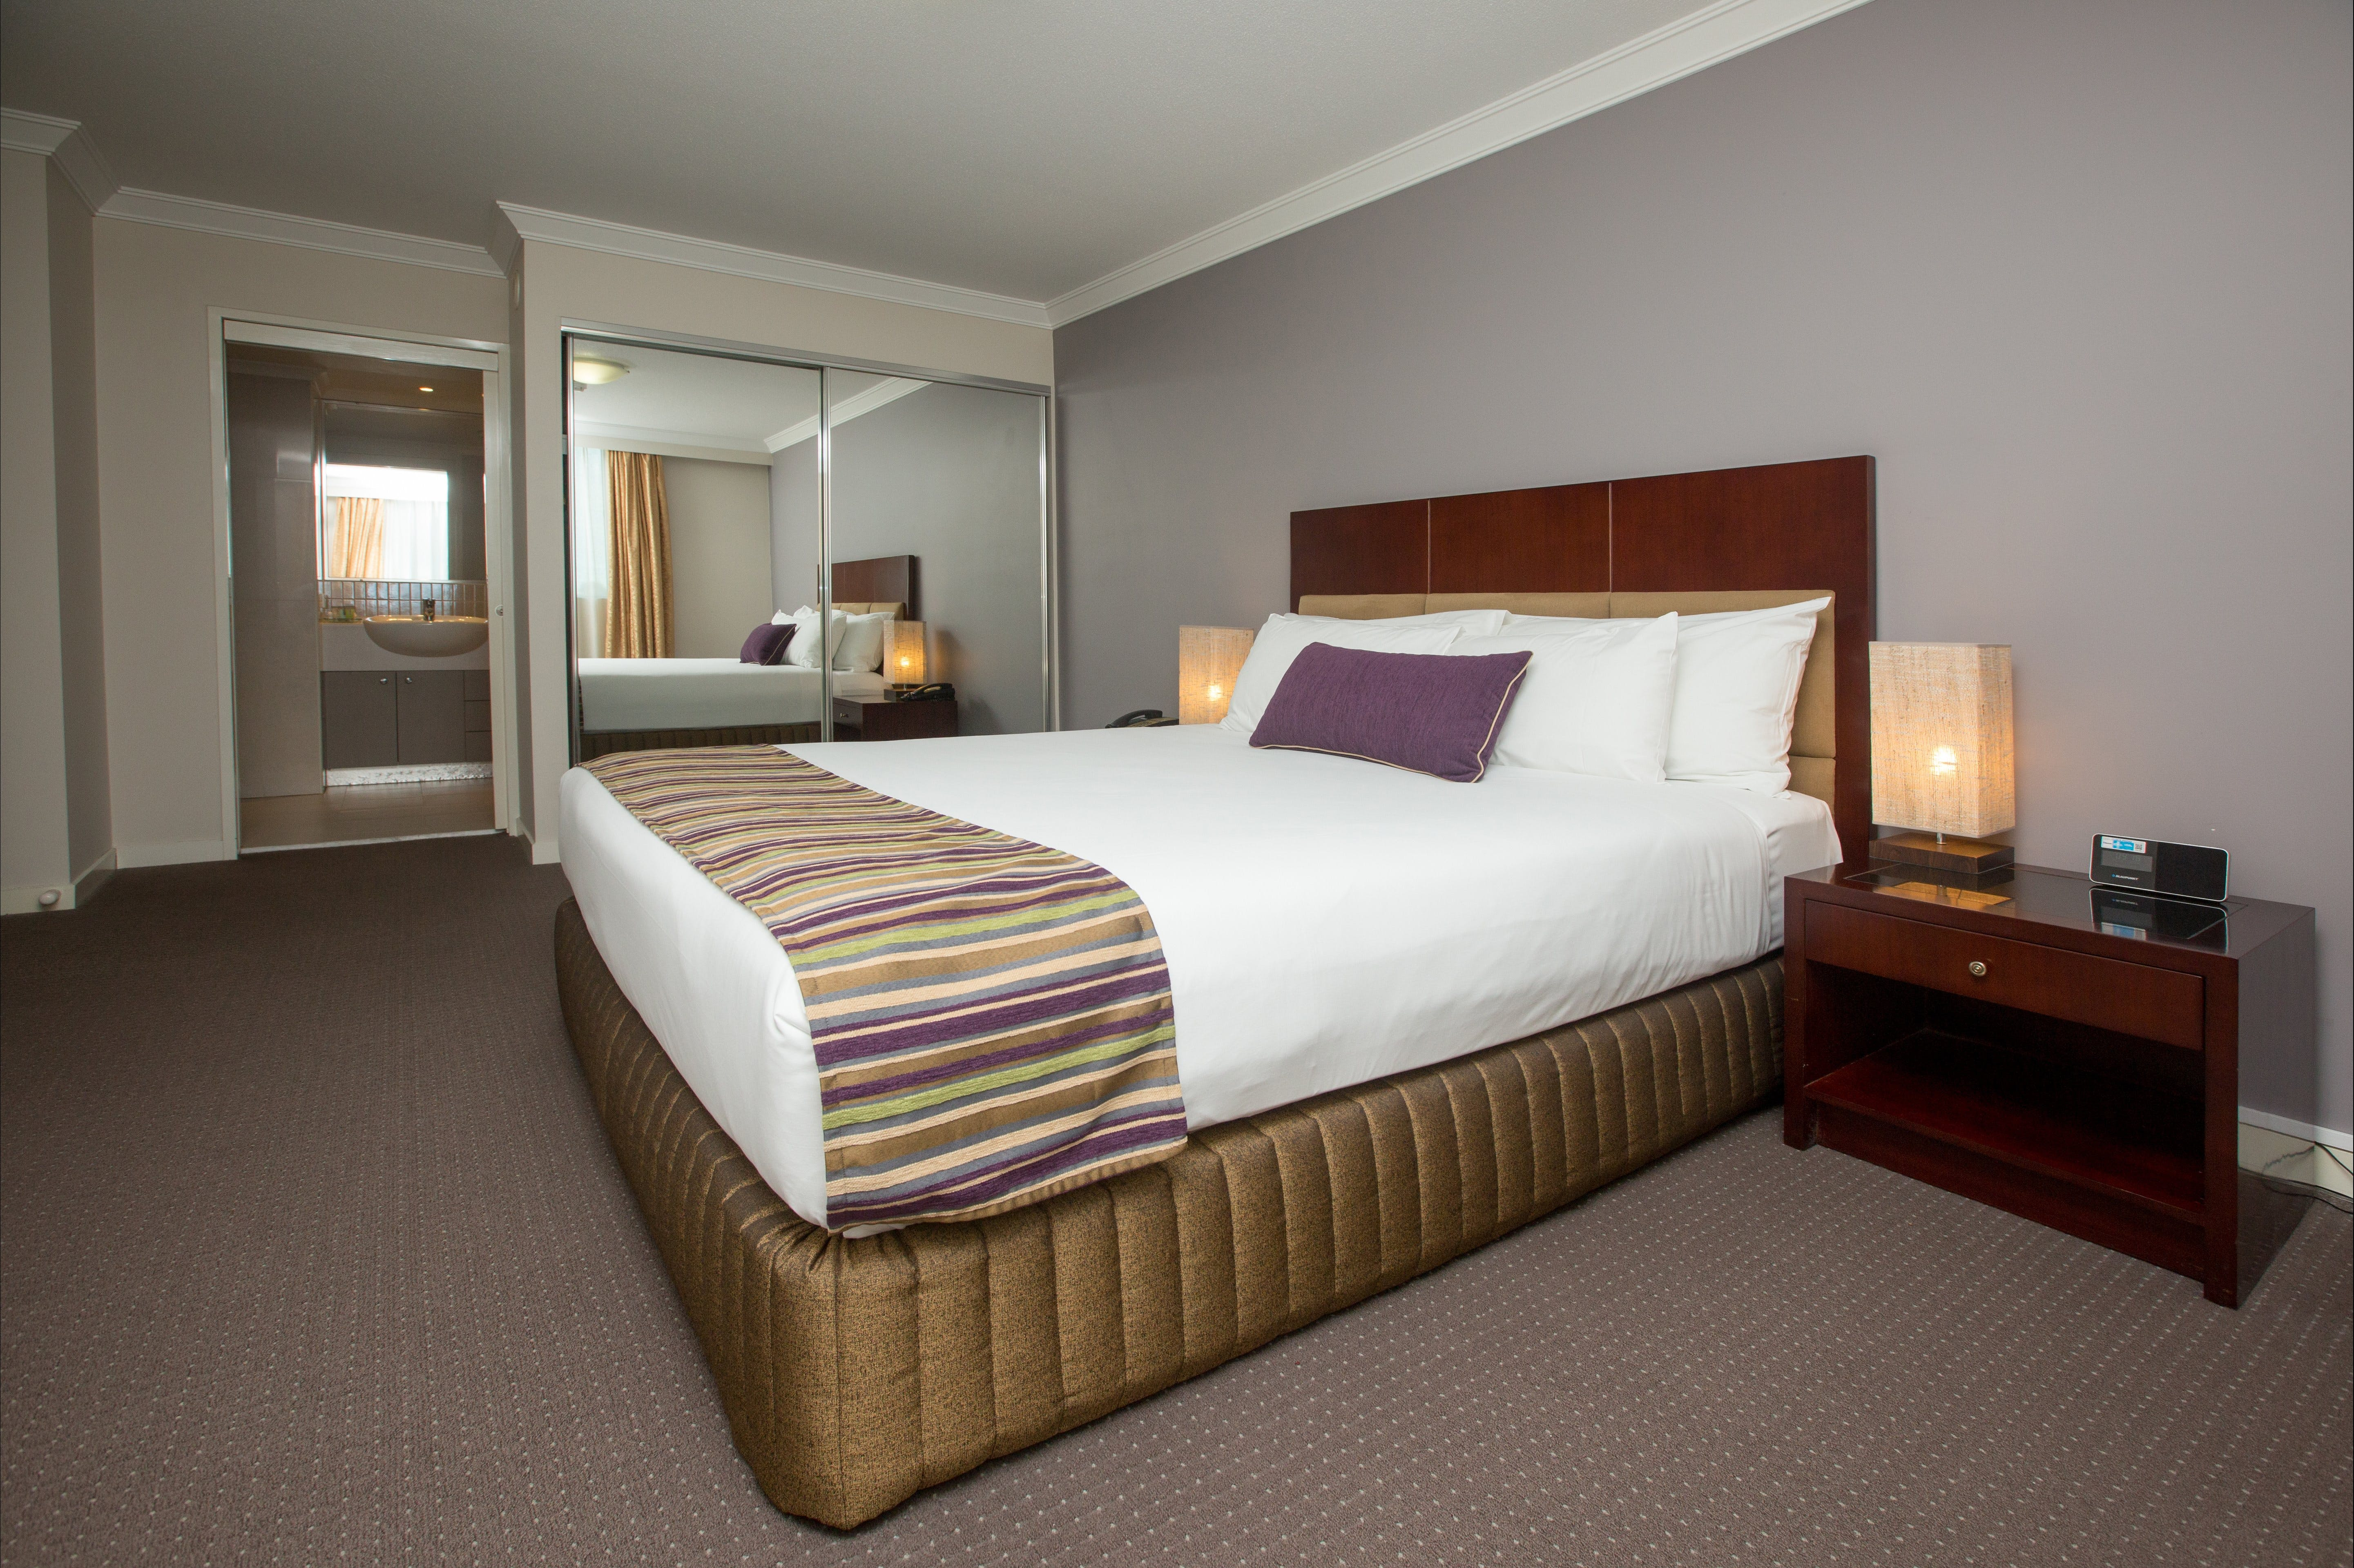 Hotel Gloria - Accommodation Adelaide